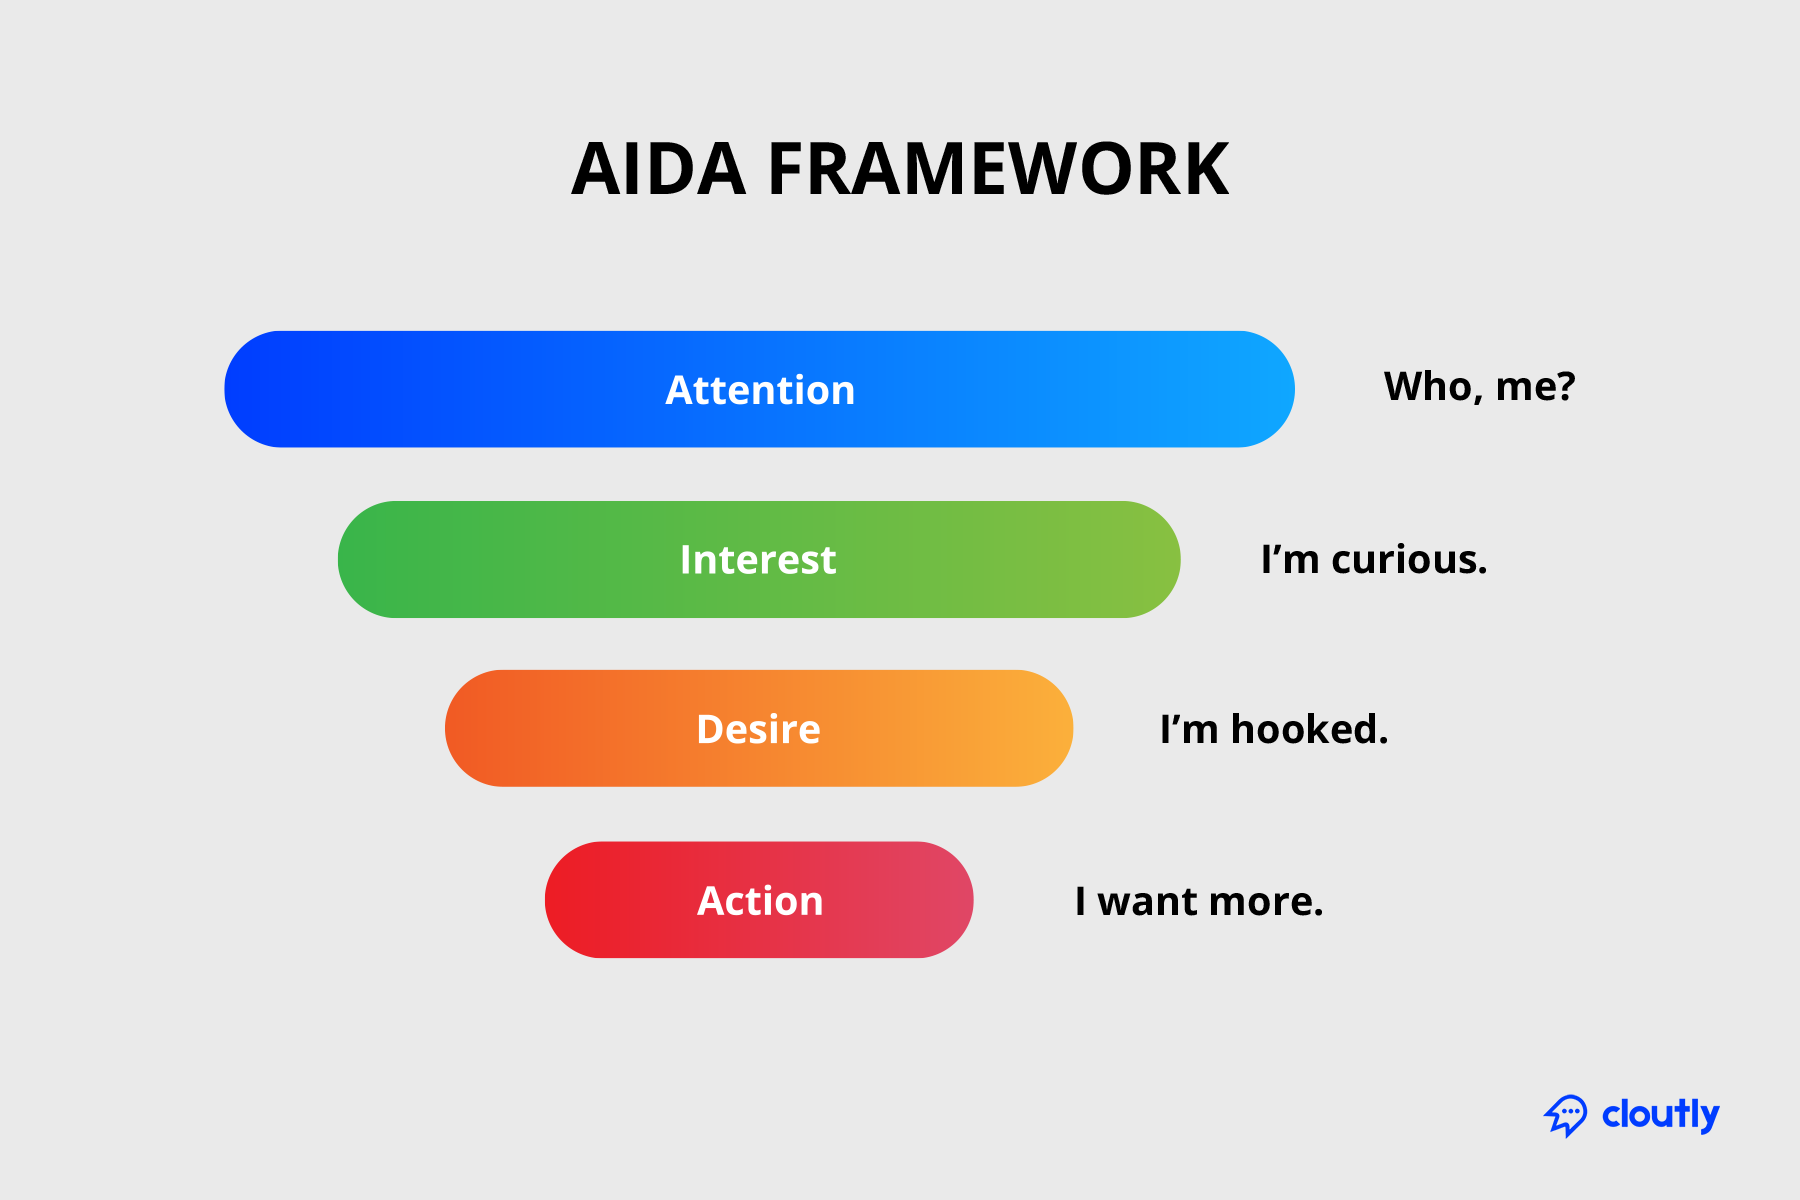 The AIDA Framework for cold email